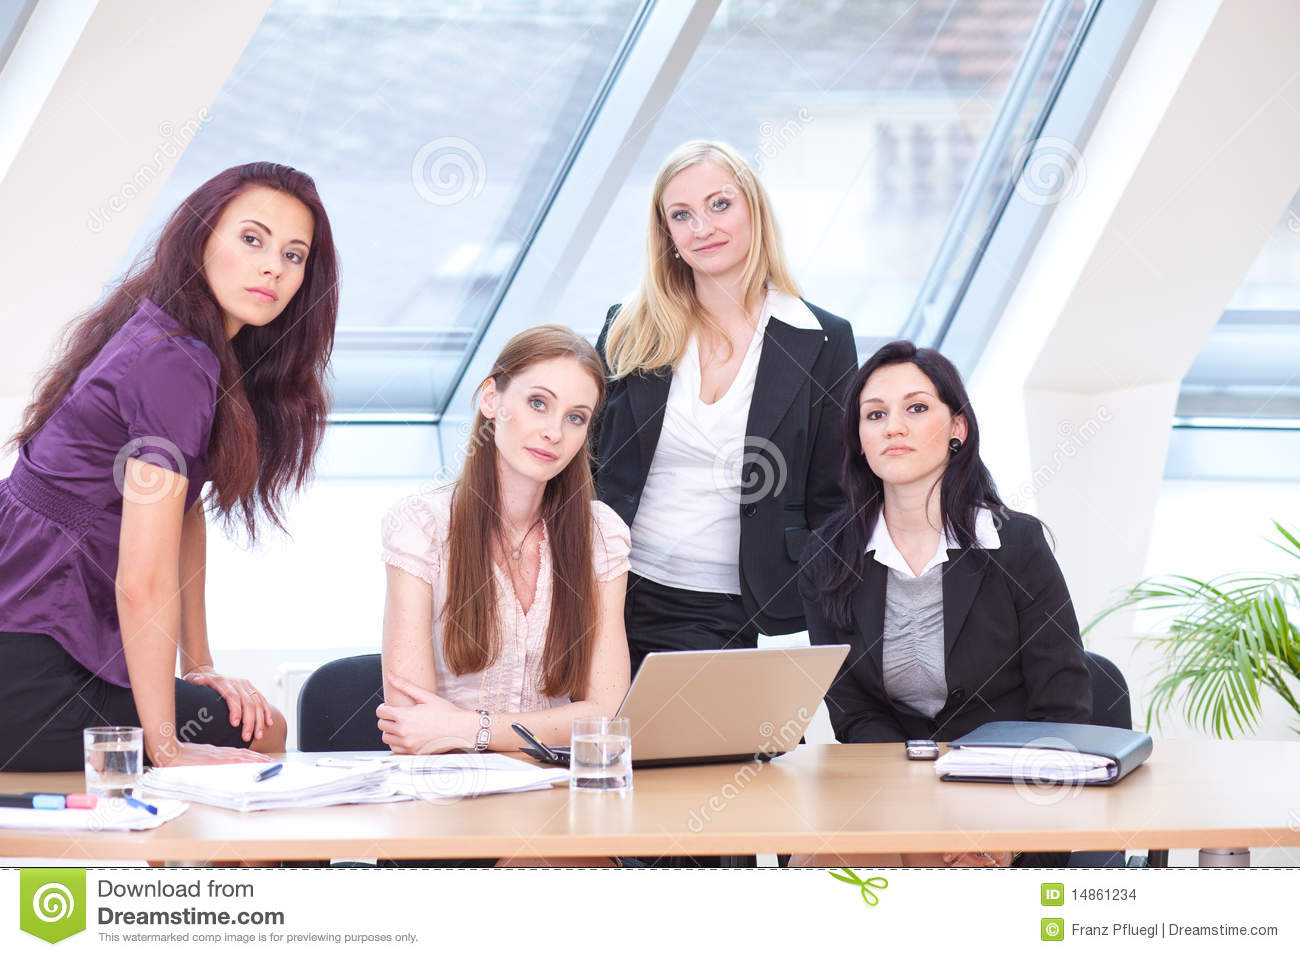 Women at the desk